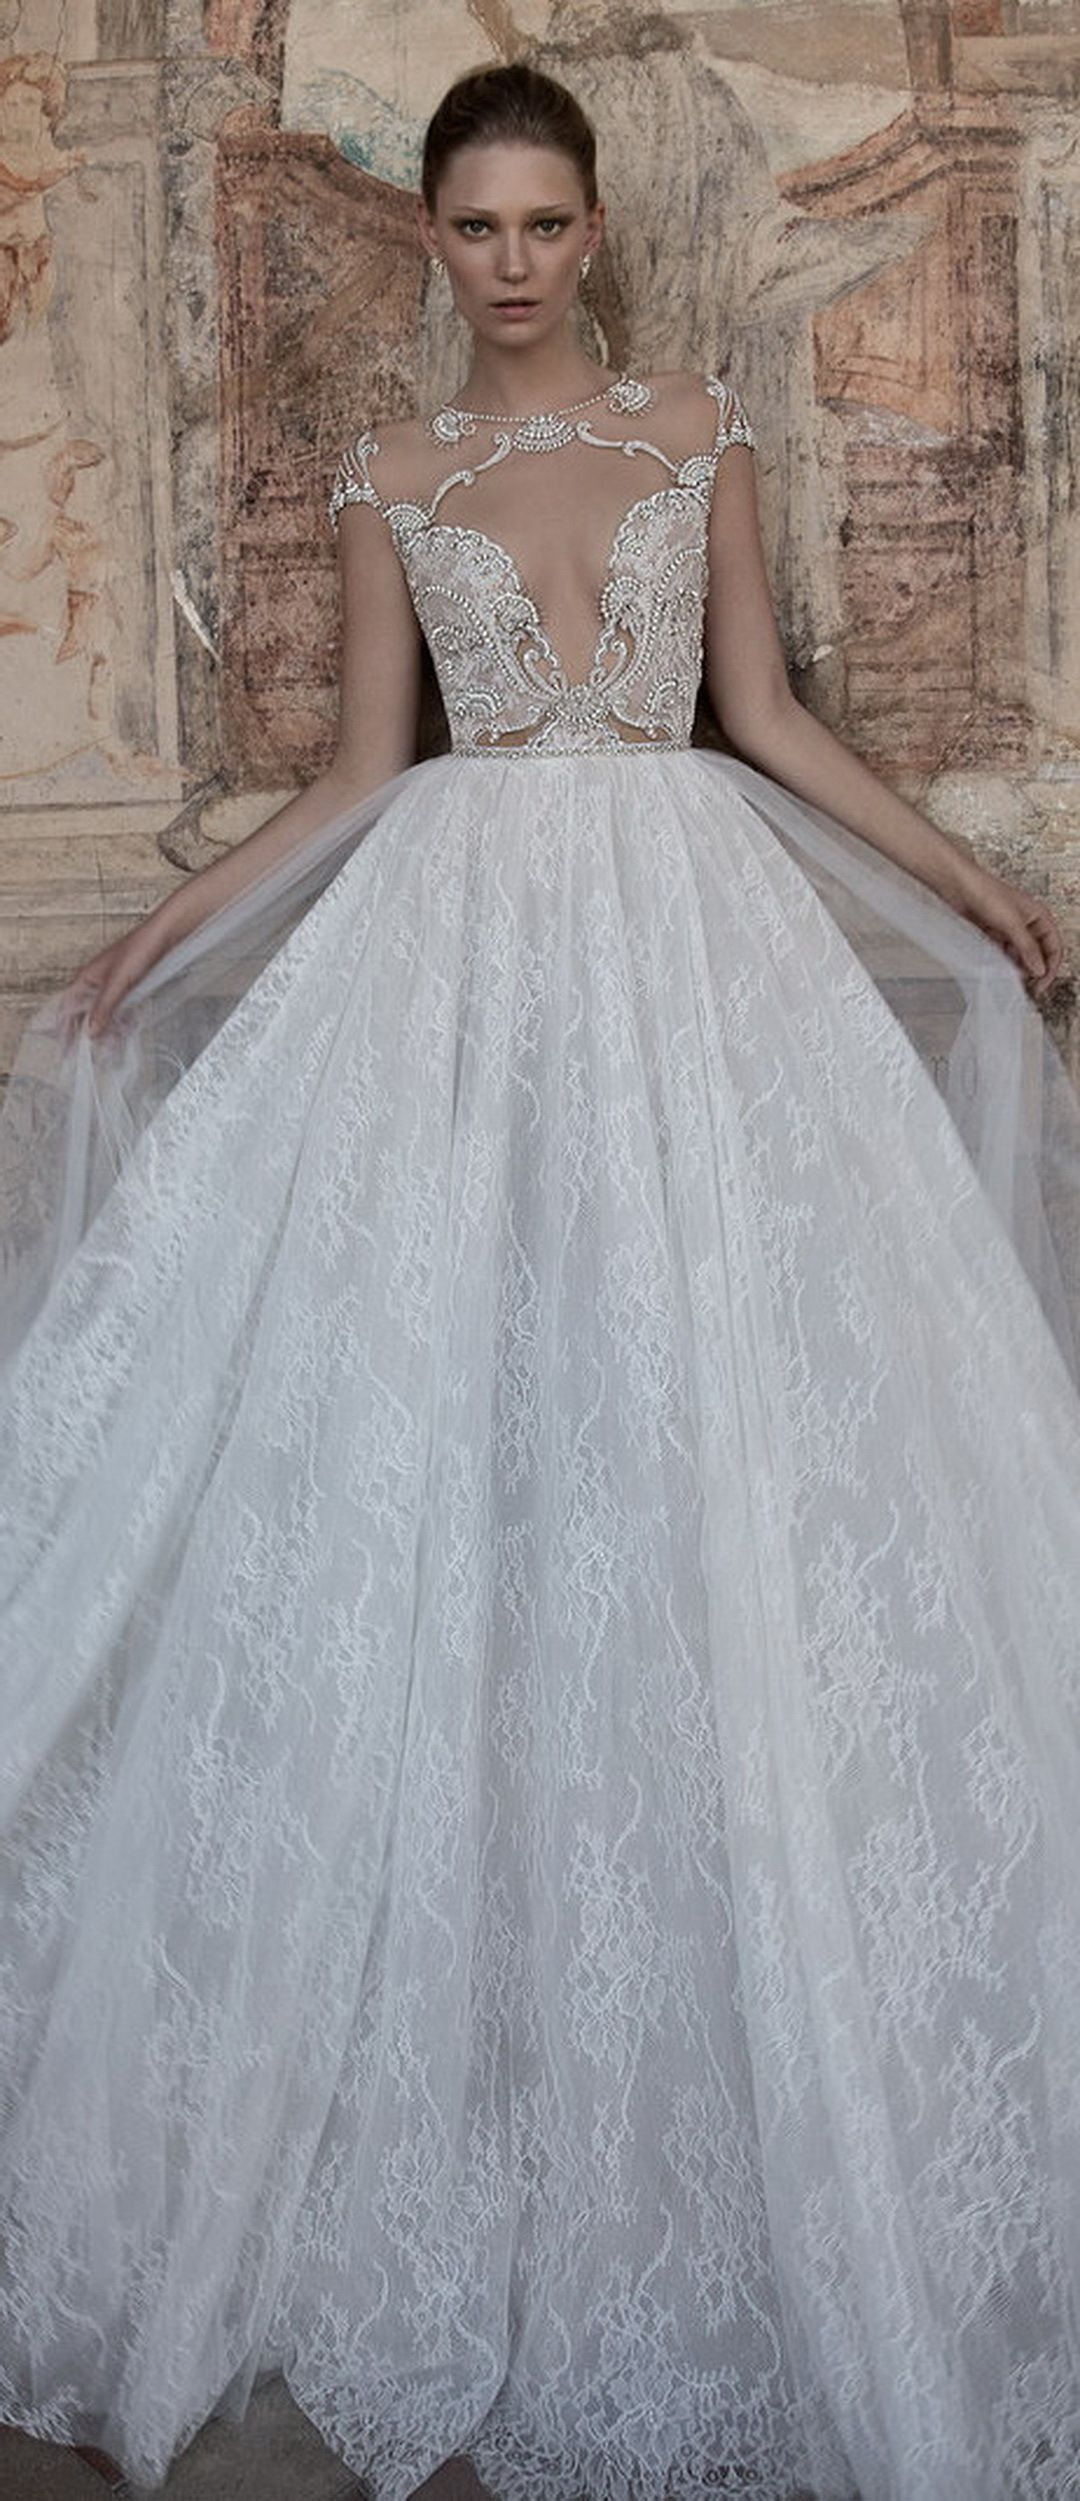 👰 25 Regal Wedding Dresses By Alon Livne | Wedding dress, Weddings ...